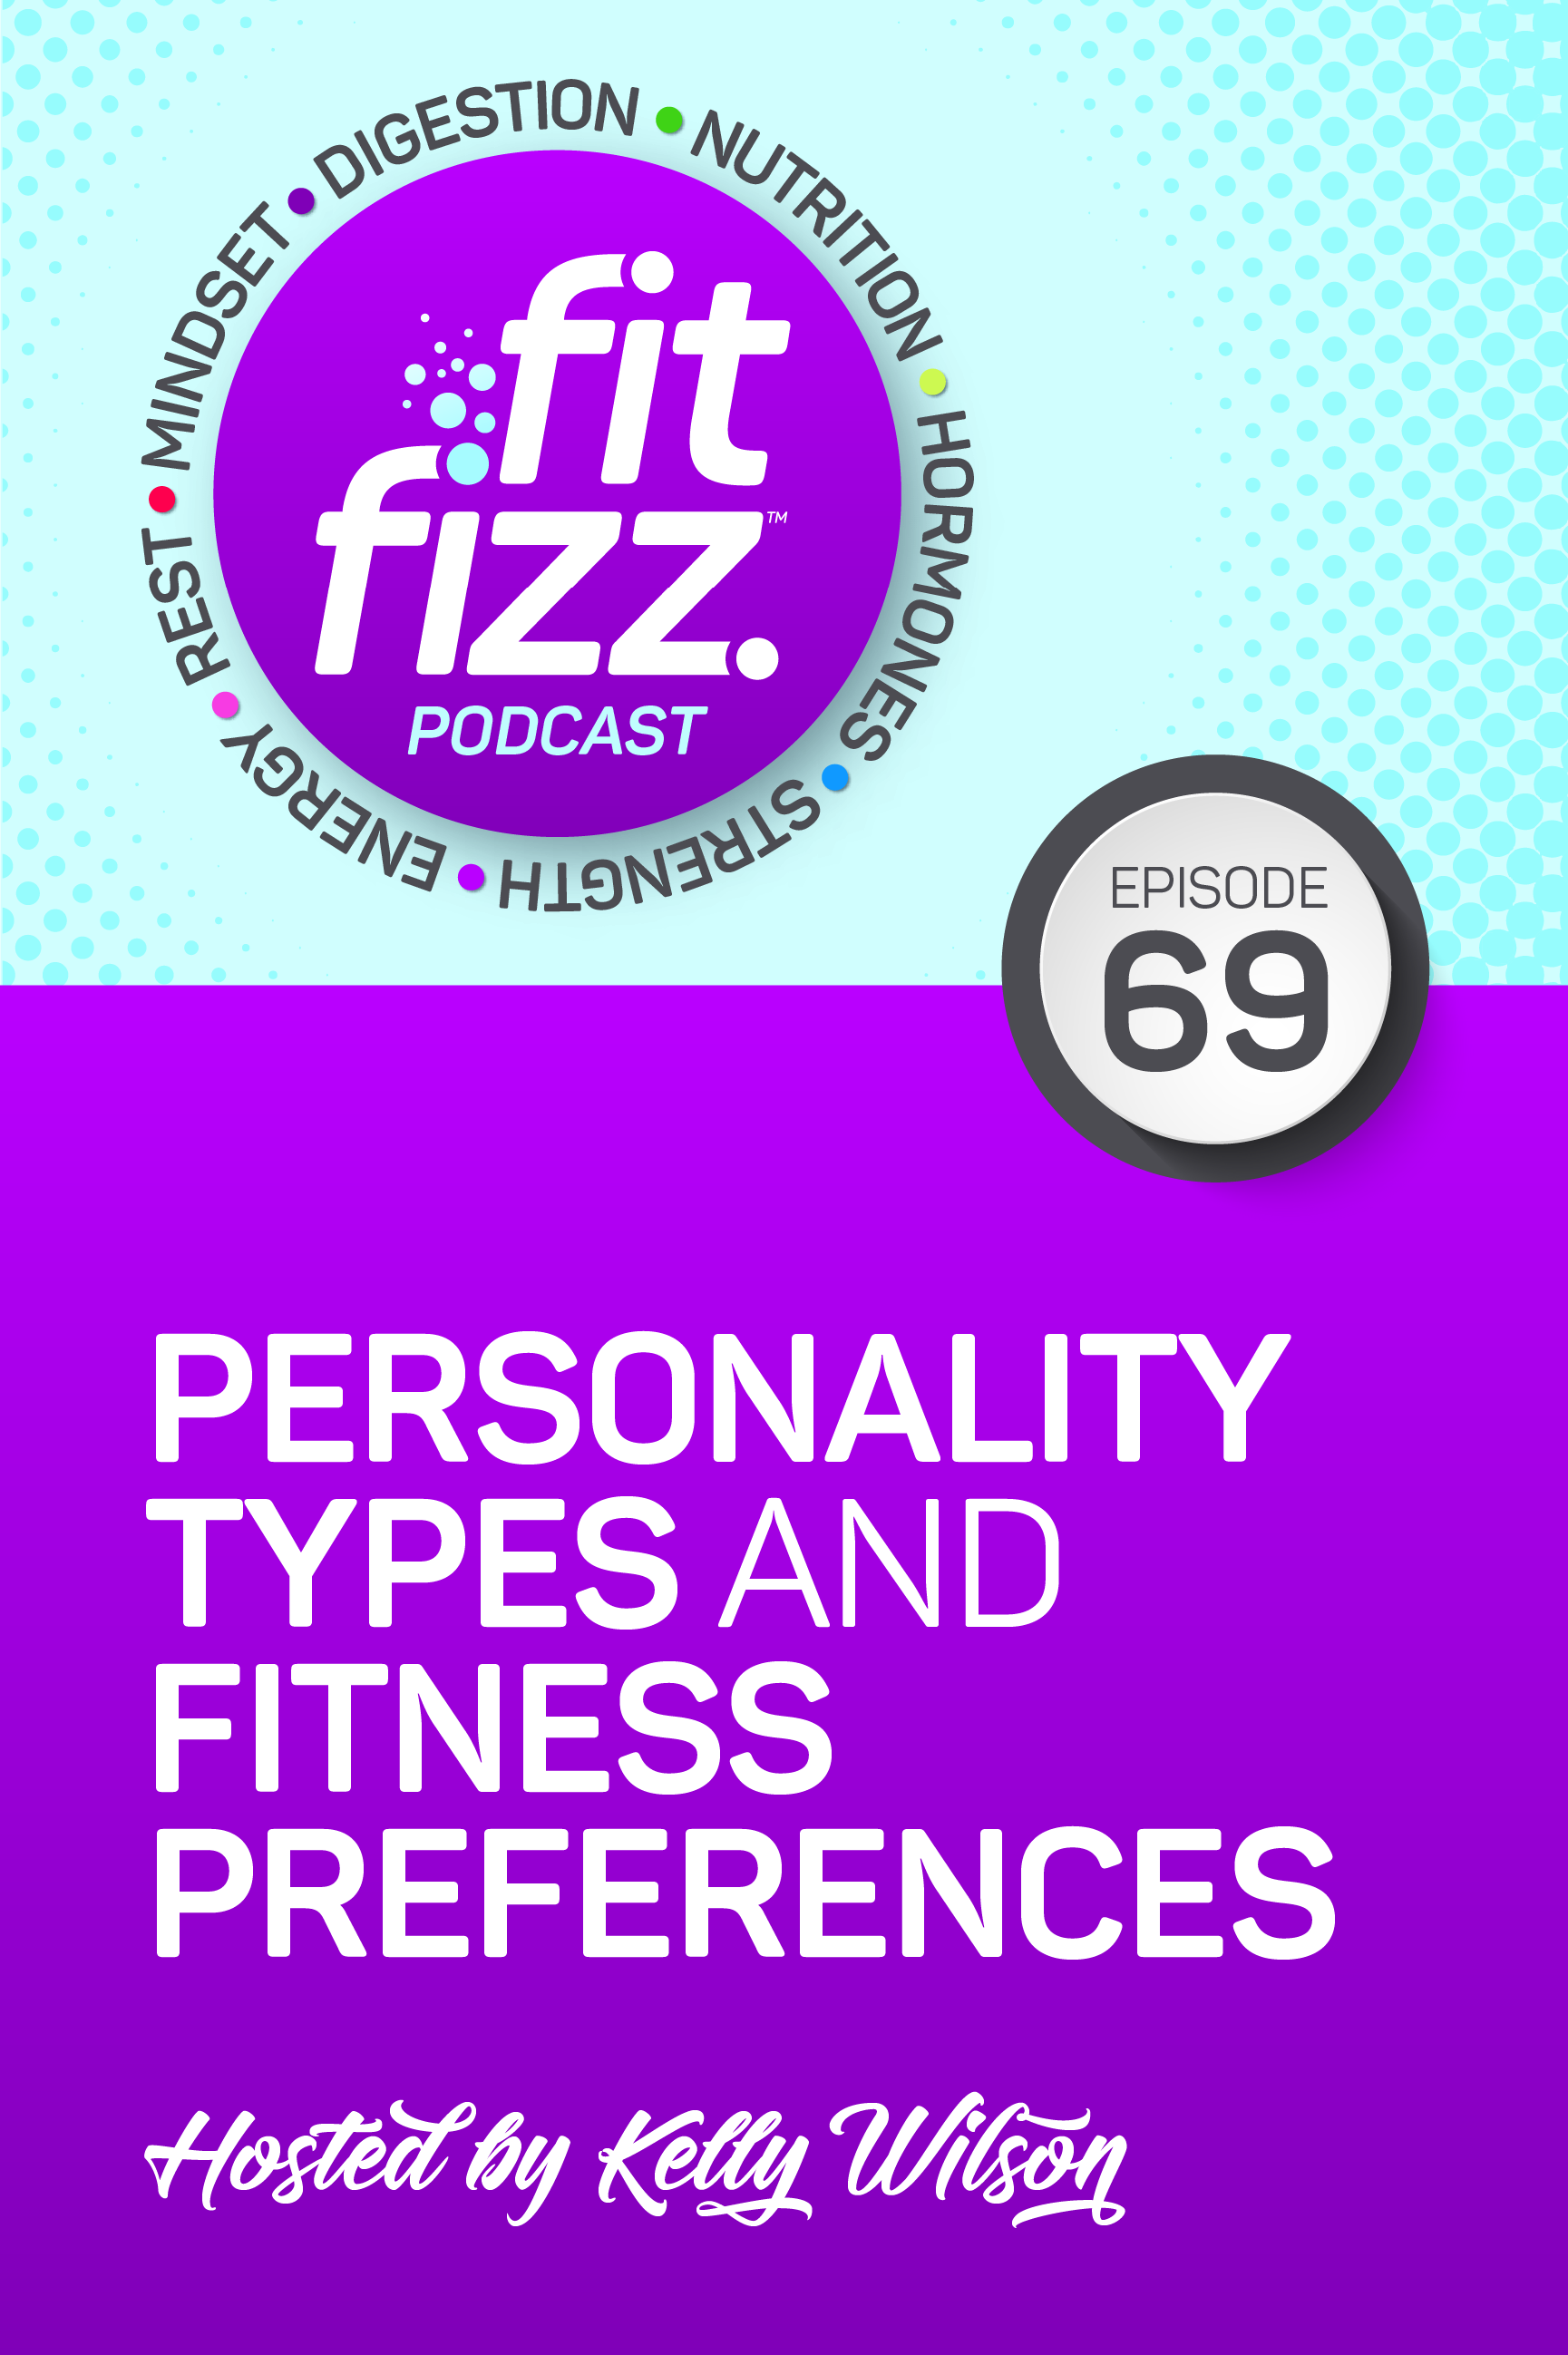 Ep. 69: Personality Types and Fitness Preferences